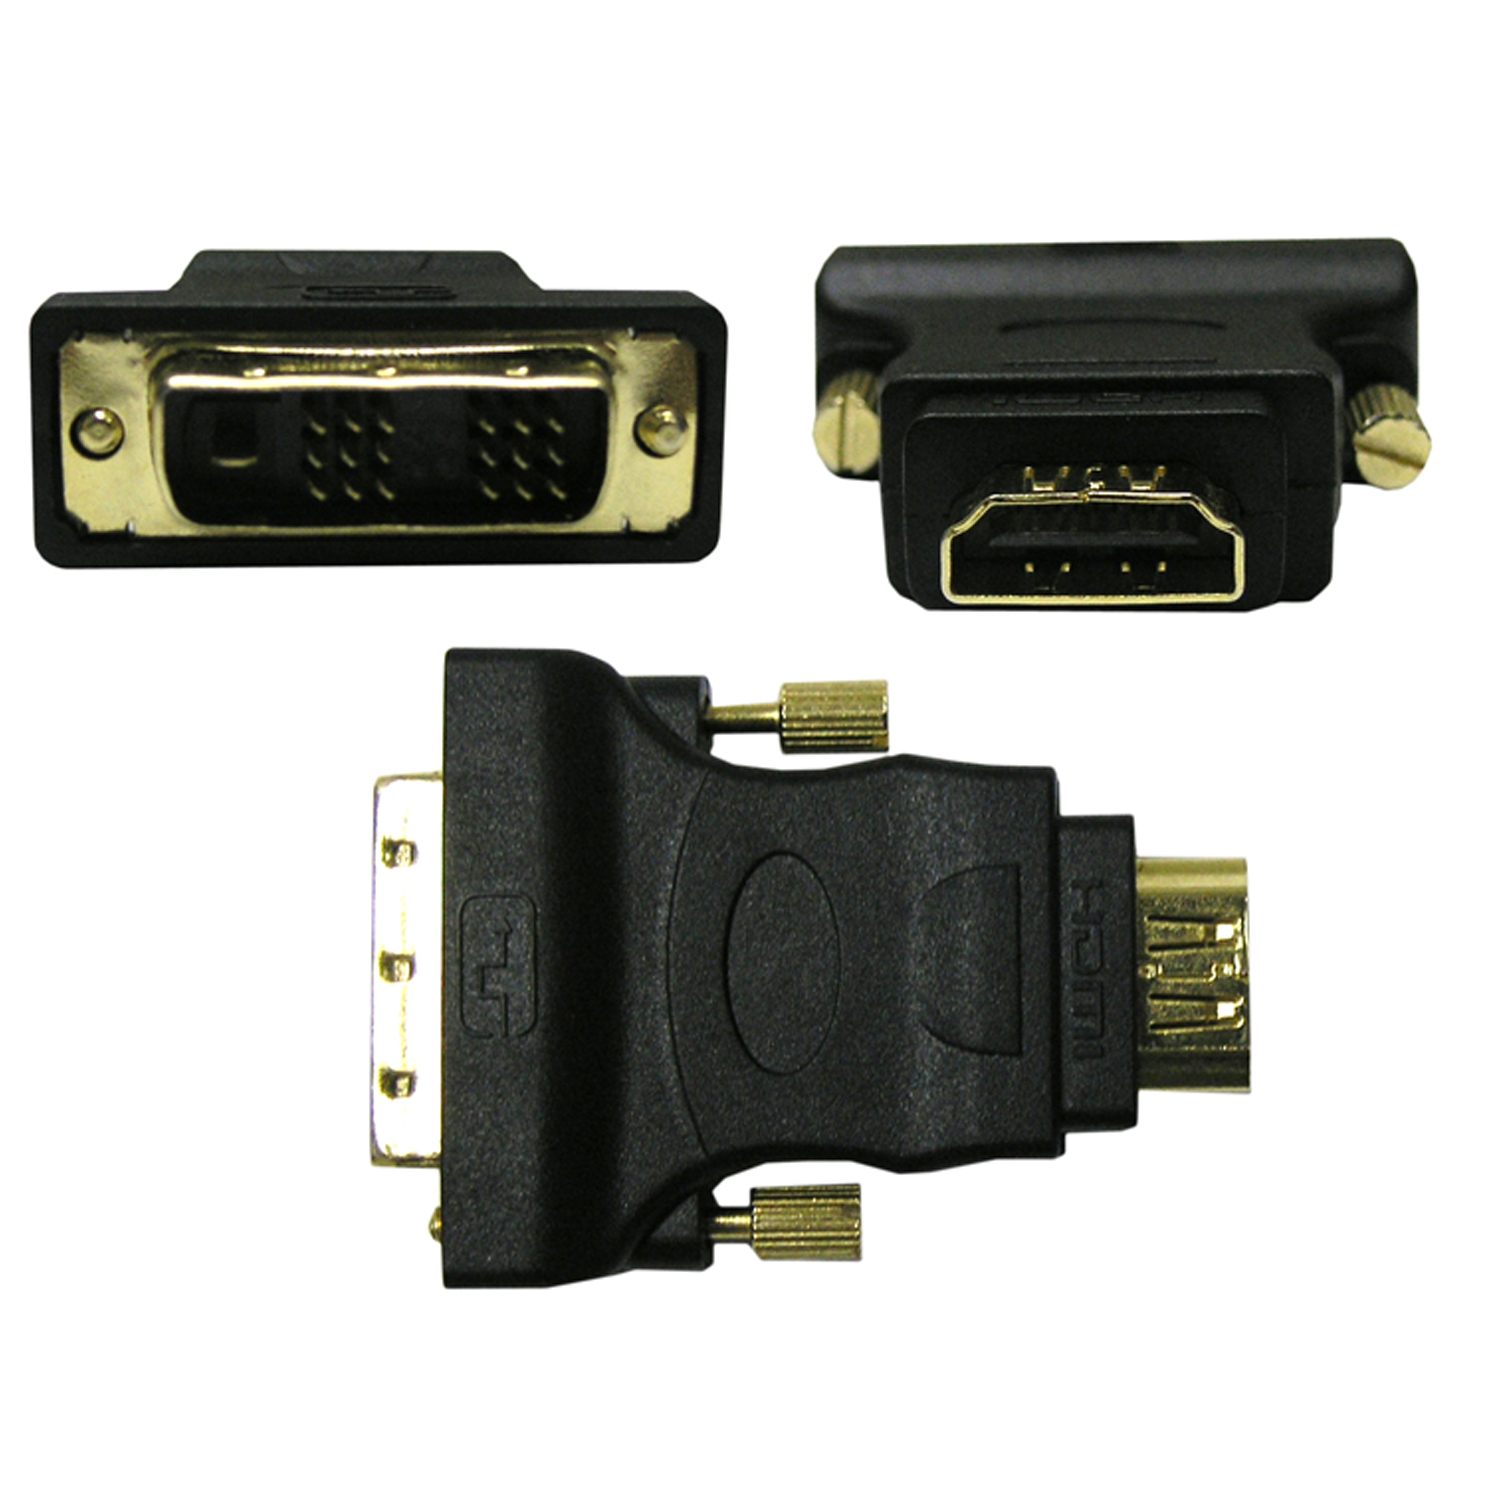 Cable Wholesale HDMI to DVI Adapter, HDMI Female to / from DVI Male